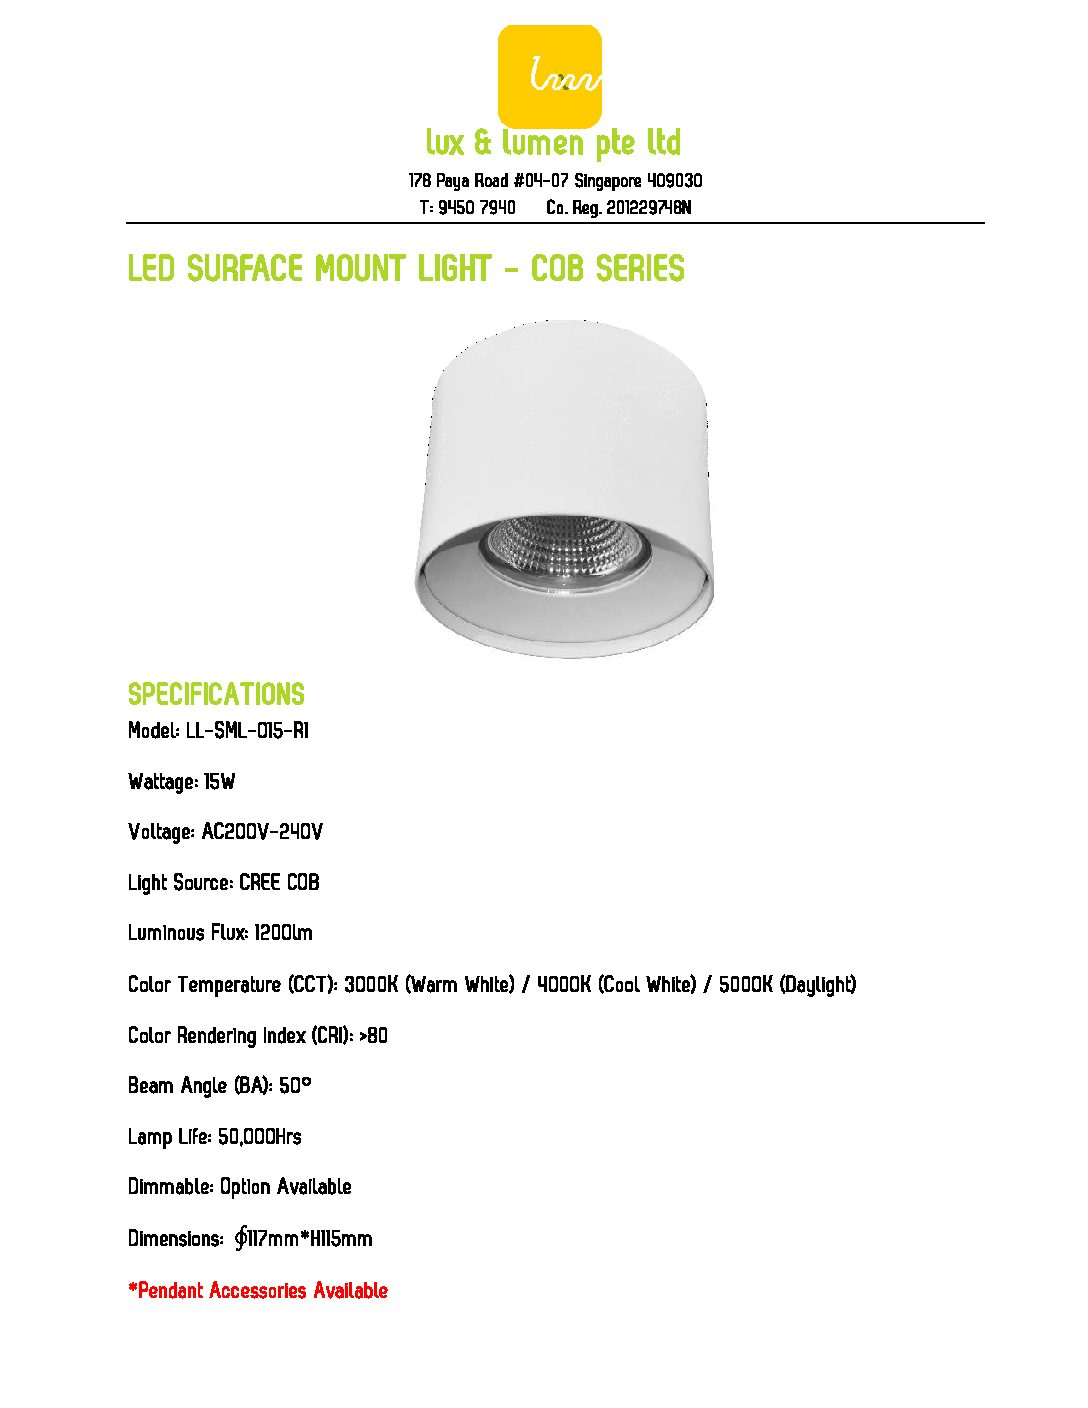 LED Surface Mount Light COB Series R015